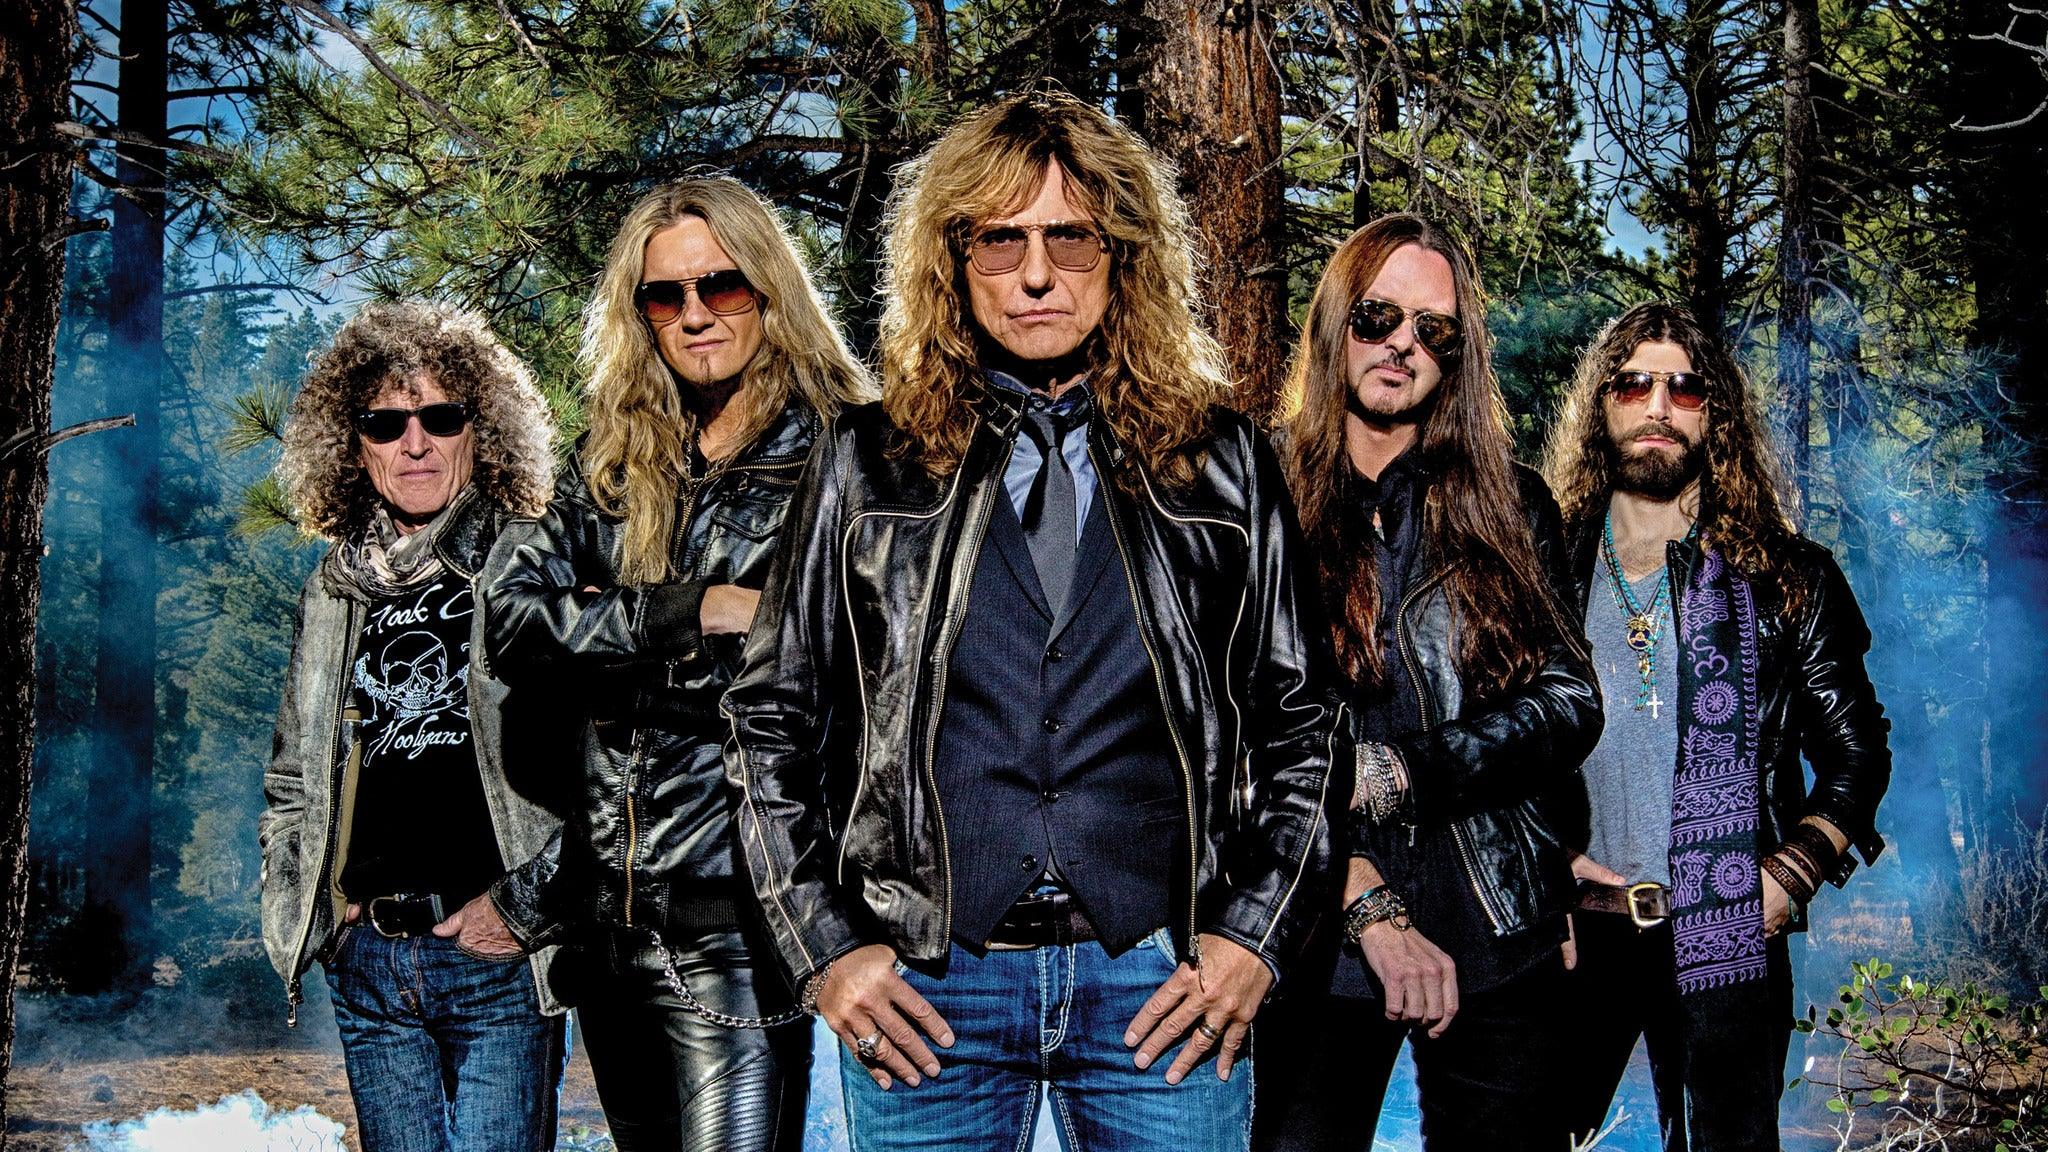 Whitesnake at Penn's Peak - Jim Thorpe, PA 18229